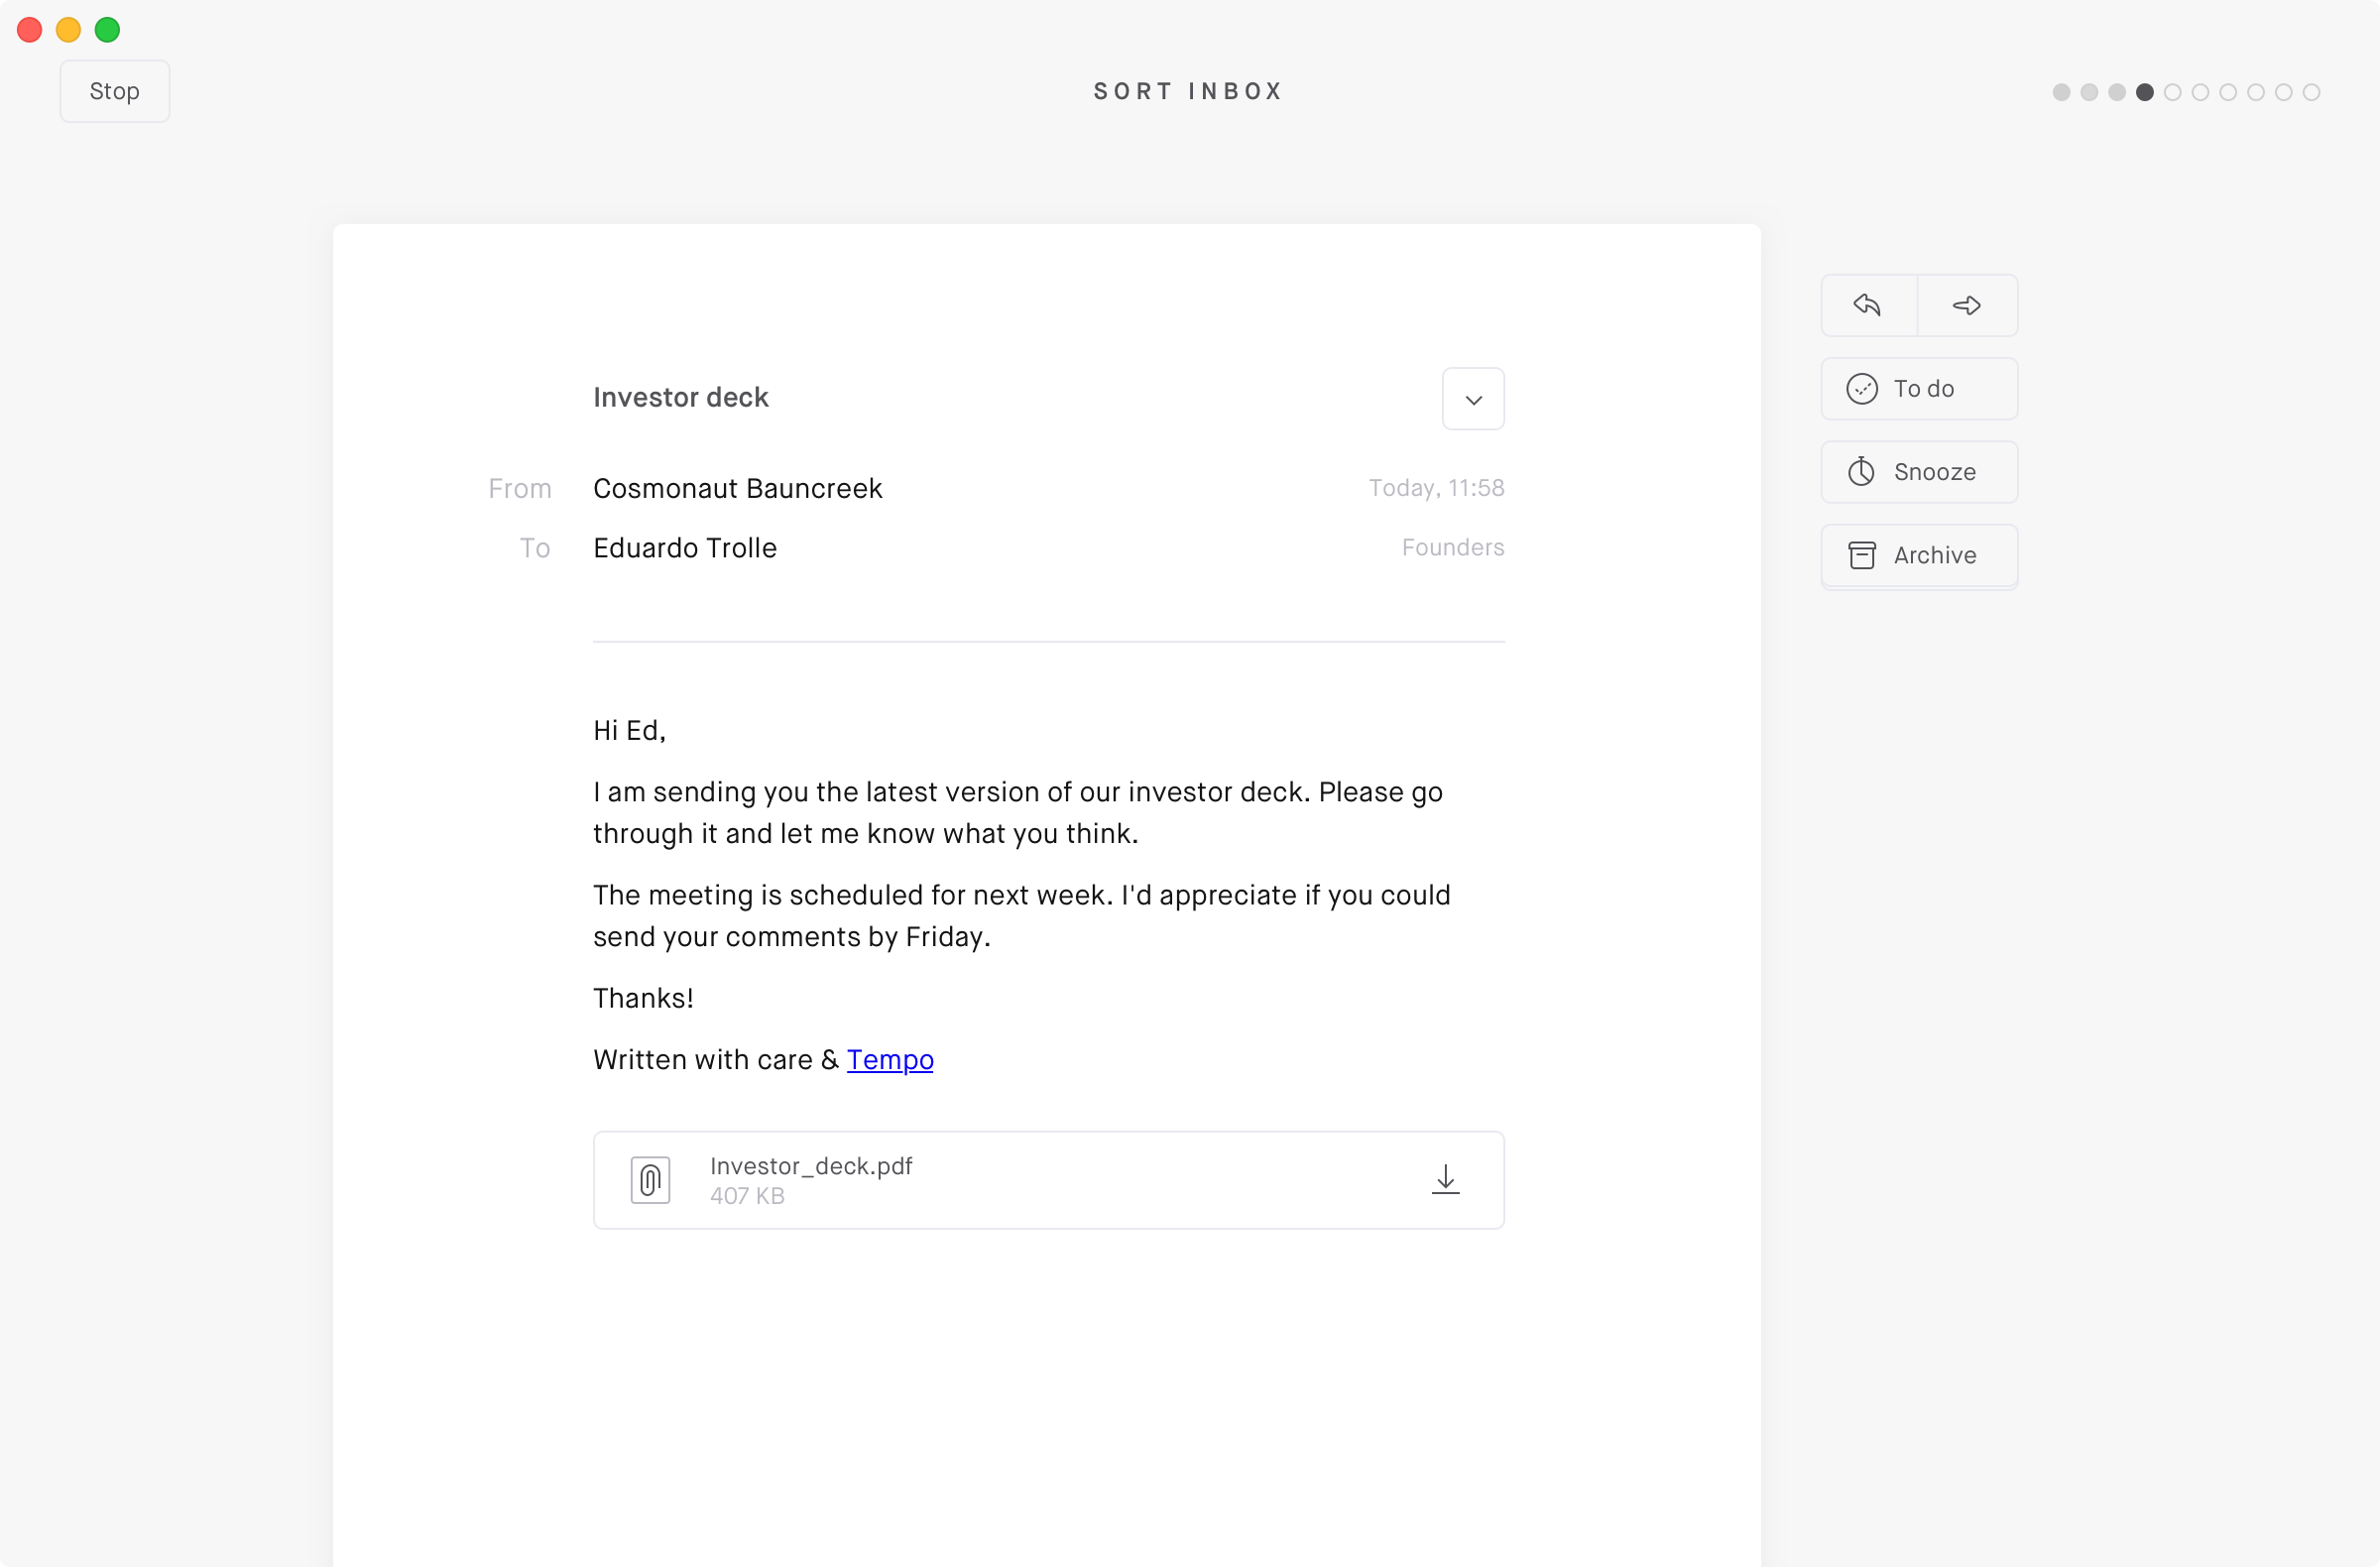 Focus sort inbox feature in the Tempo desktop email client